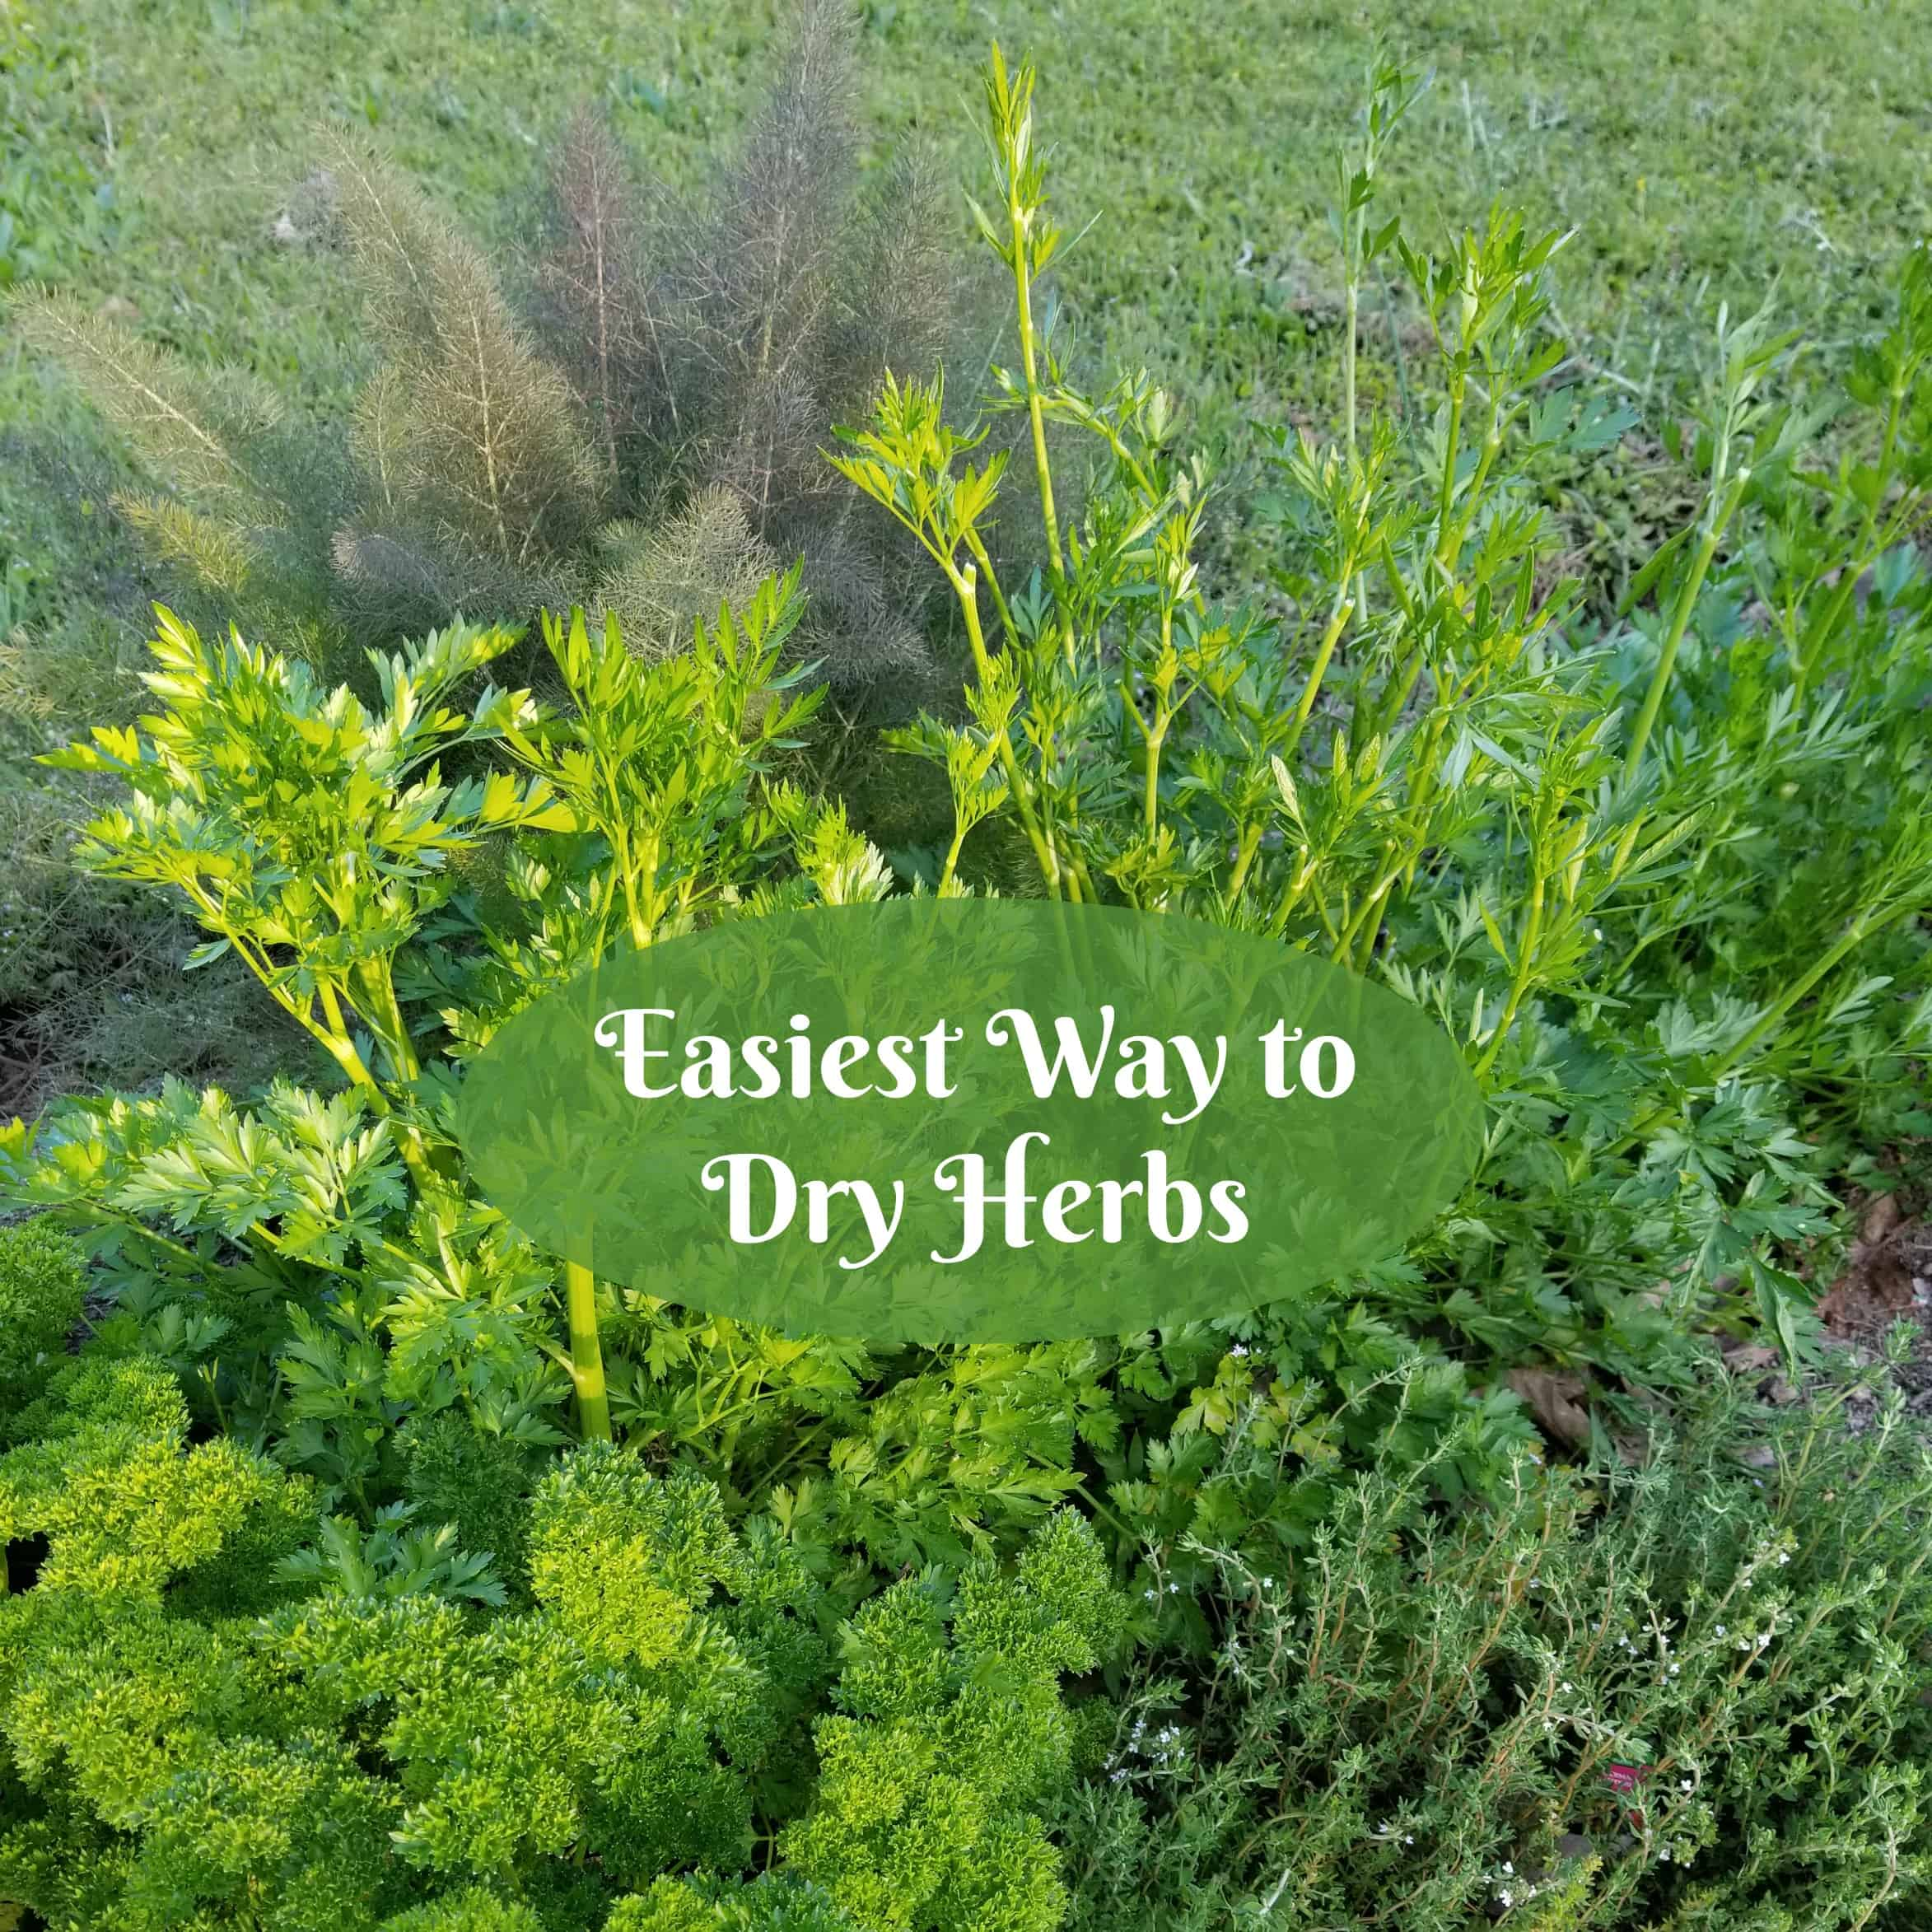 Easiest Way to Dry Herbs, Green herbs spotlighted by sunset